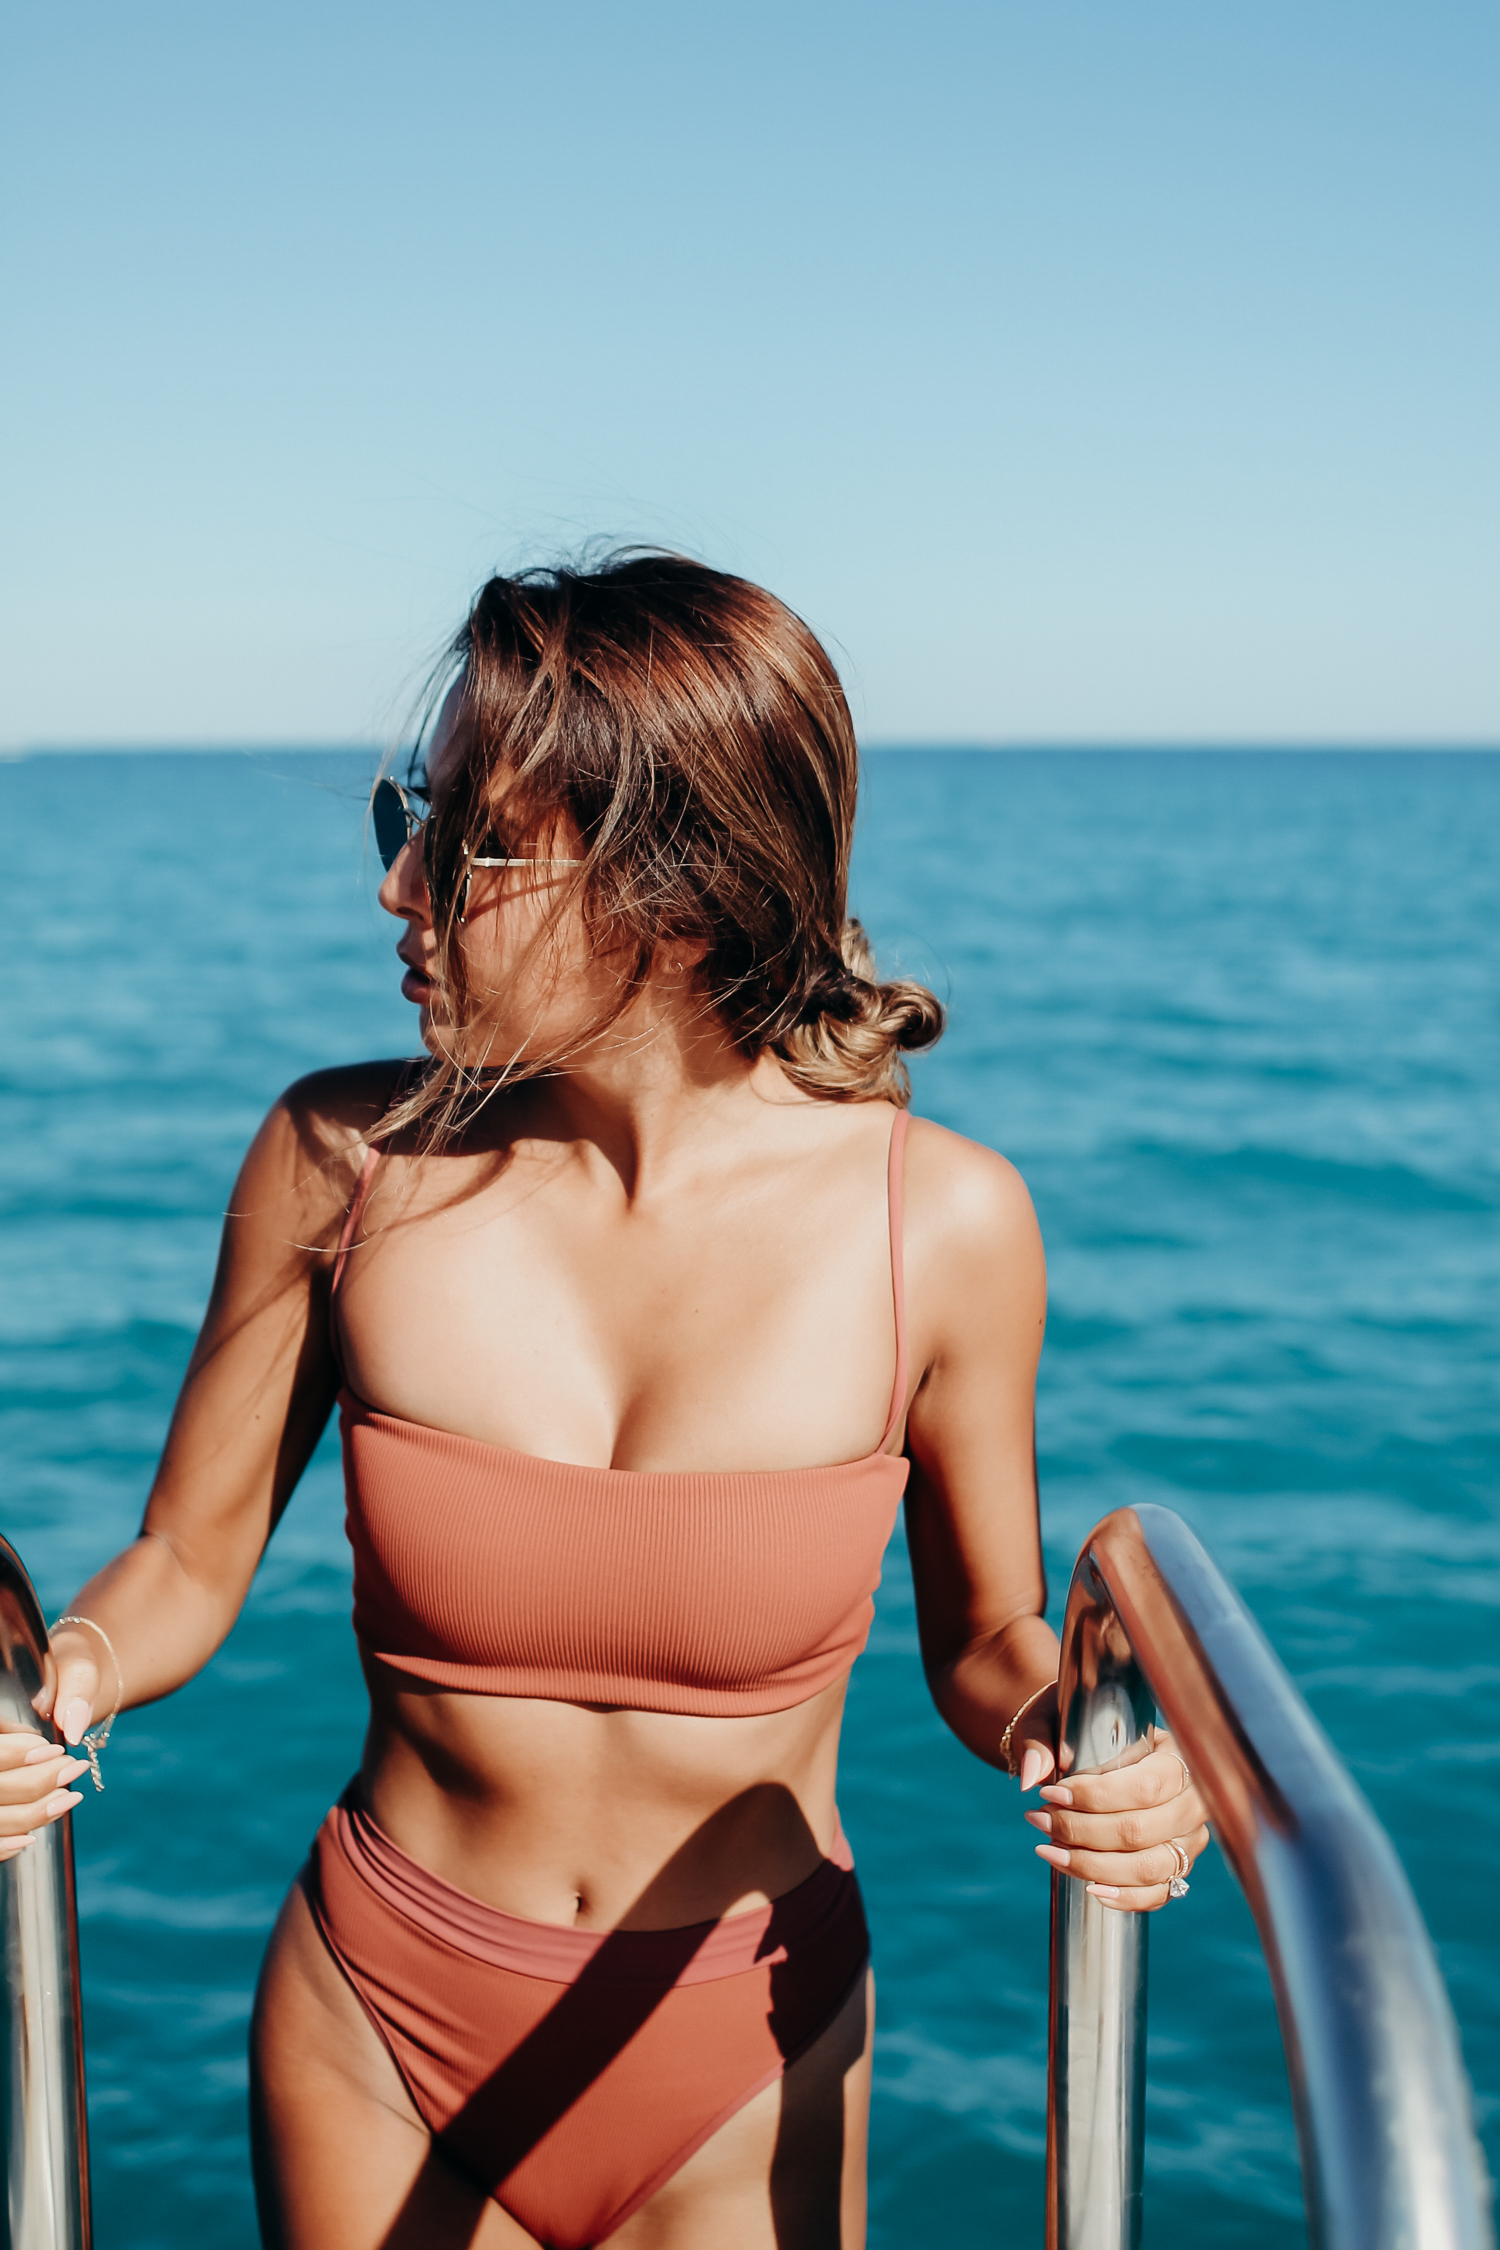 L Space high waist bikini, Everyday Pursuits in Antibes, France